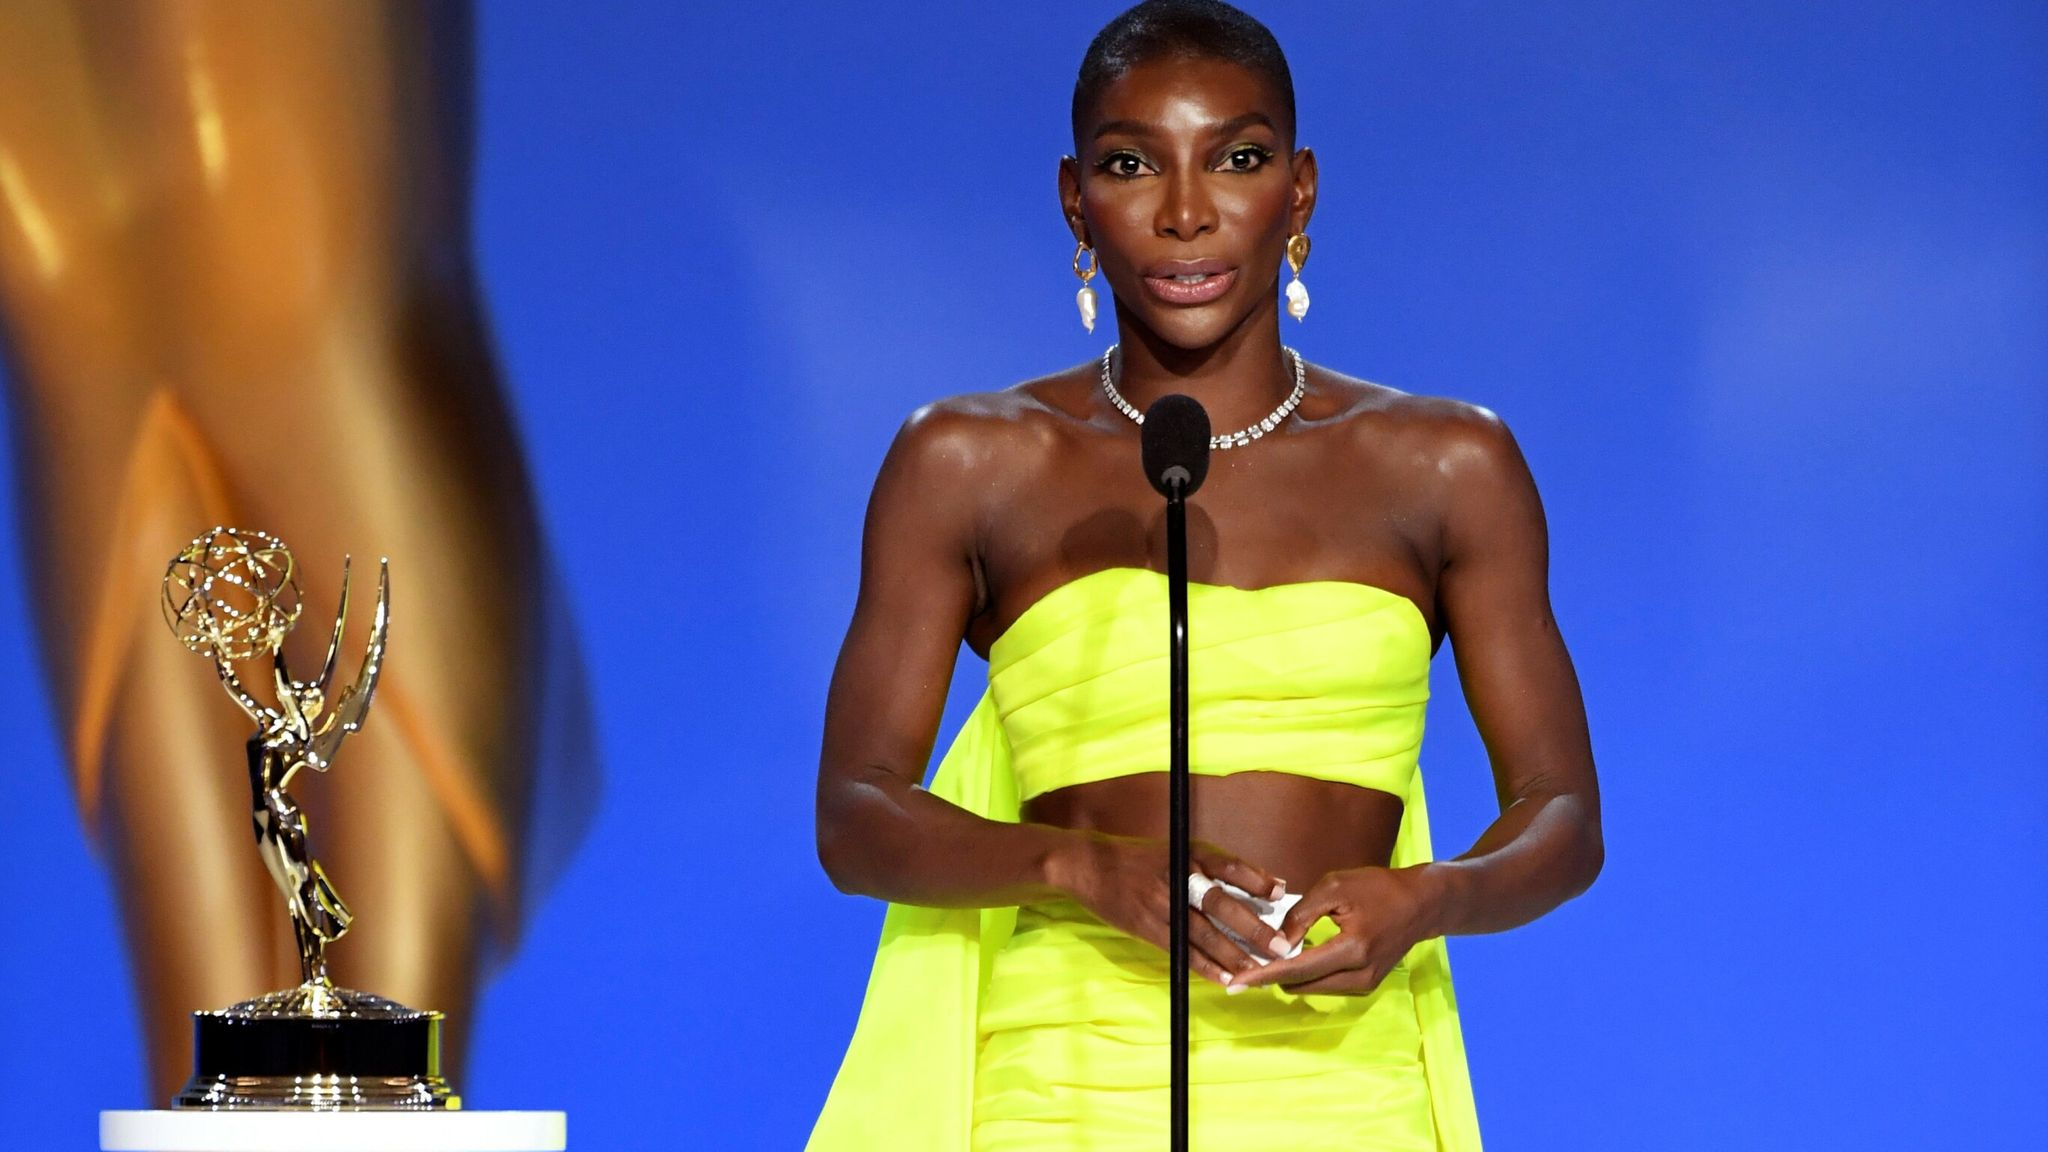 Michaela Coel accepts the award for outstanding writing for a limited or anthology series or movie for I May Destroy You at the Emmys in 2021. Pic: Phil McCarten/Invision/ Television Academy/AP